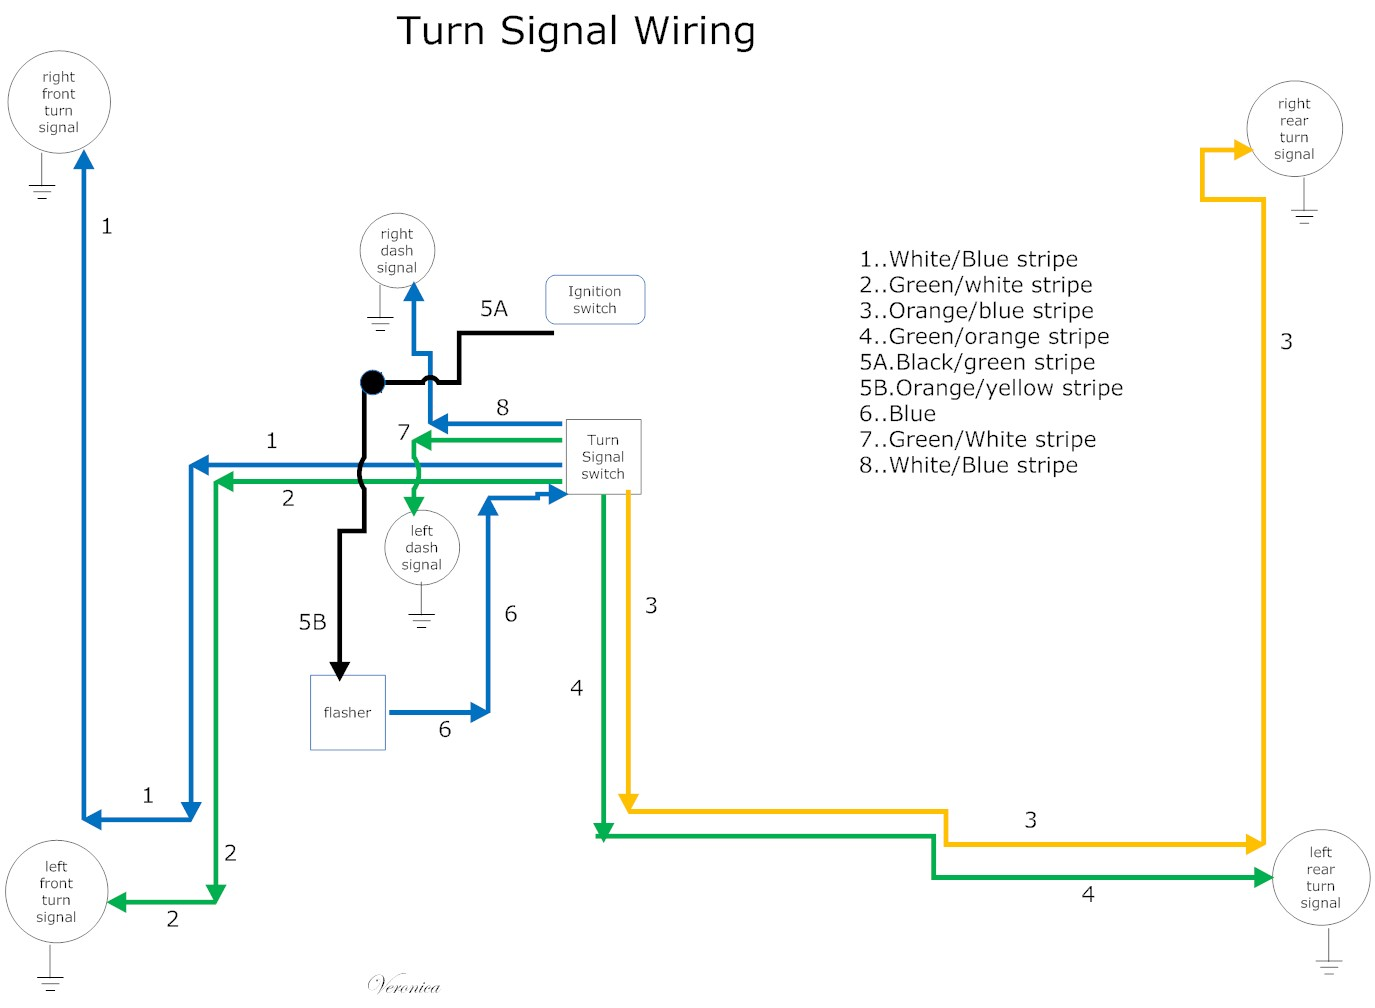 Turn+signal+Wiring 1966 mustang wiring diagrams readingrat net 2004 Ford Mustang Engine Diagram at alyssarenee.co